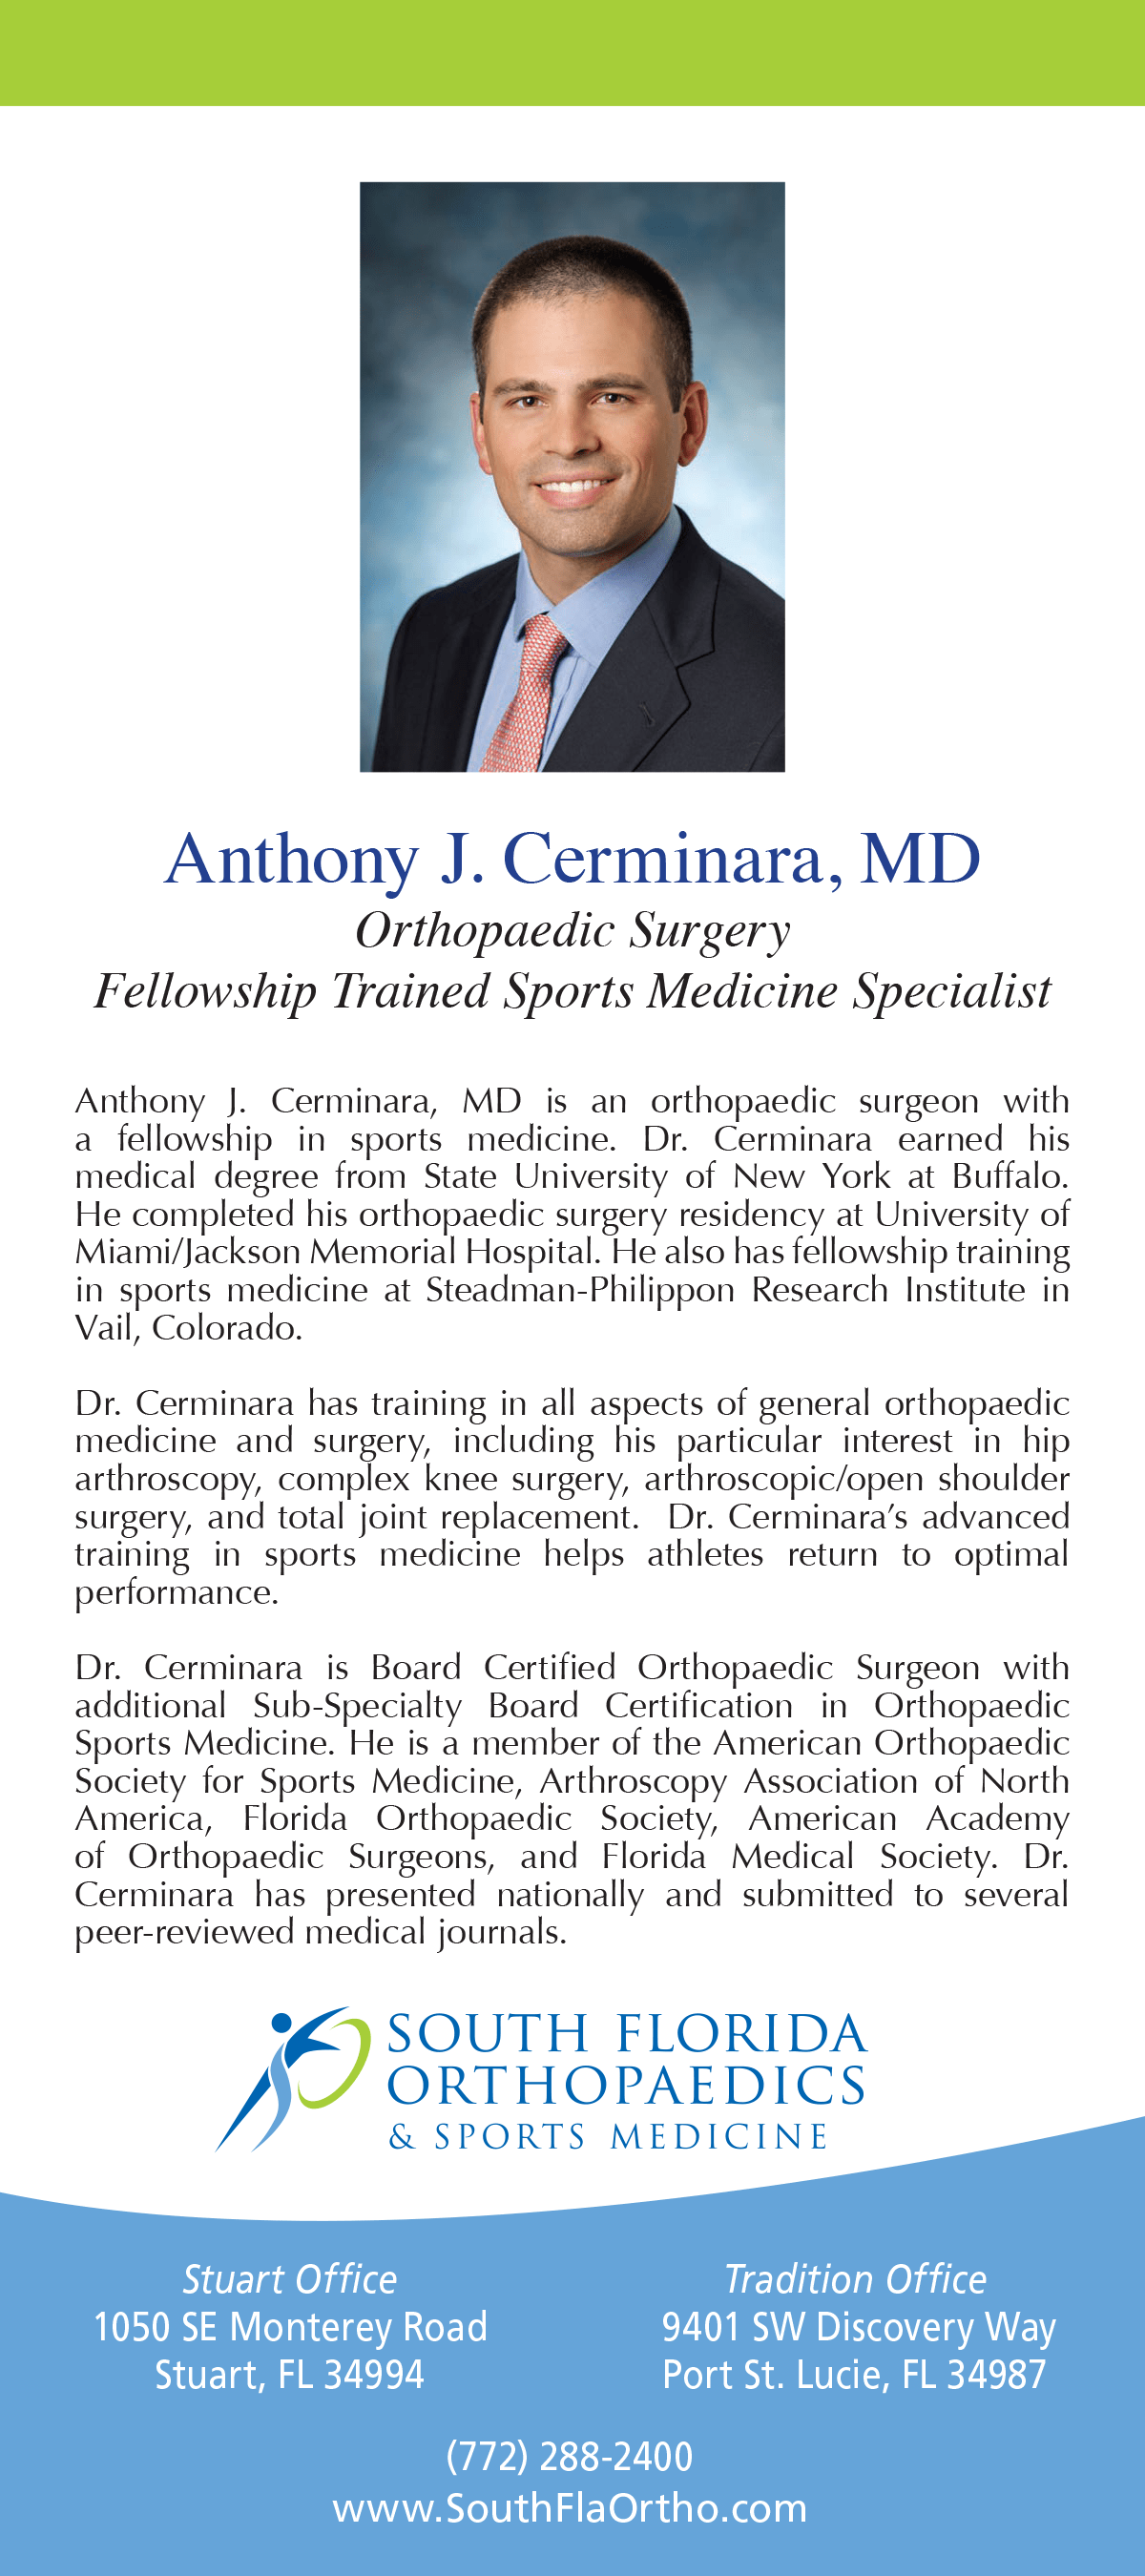 Anthony J  Cerminara, MD, FAAOS | South Florida Orthopaedics